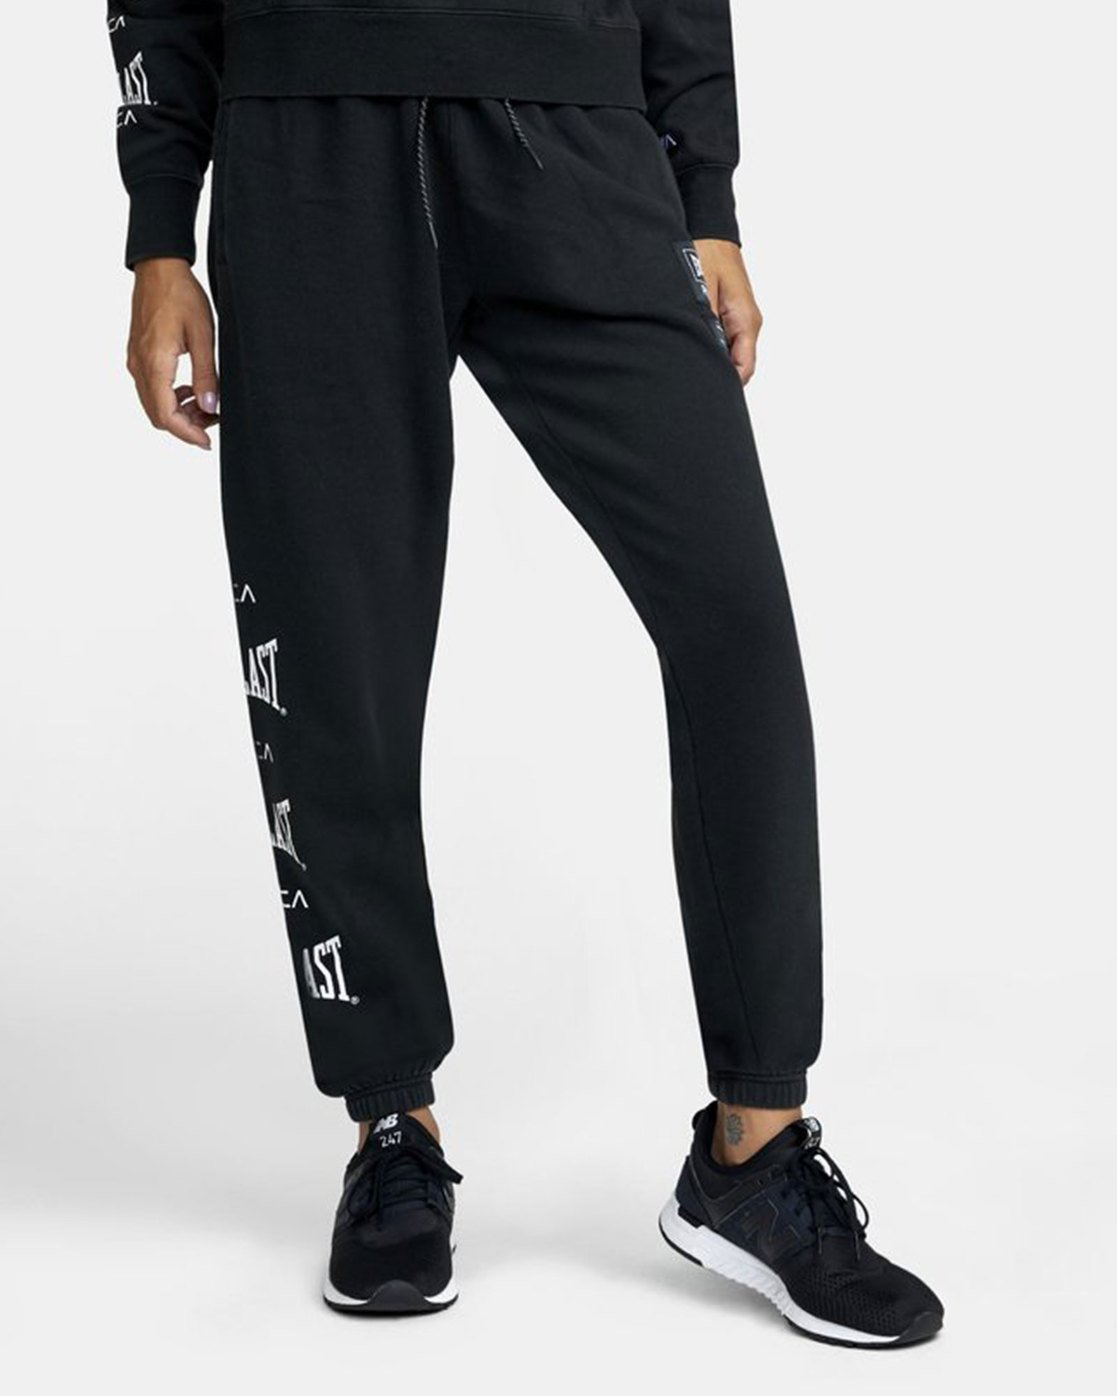 0 EVERLAST SPORT WORKOUT SWEATPANT Black T3081RES RVCA